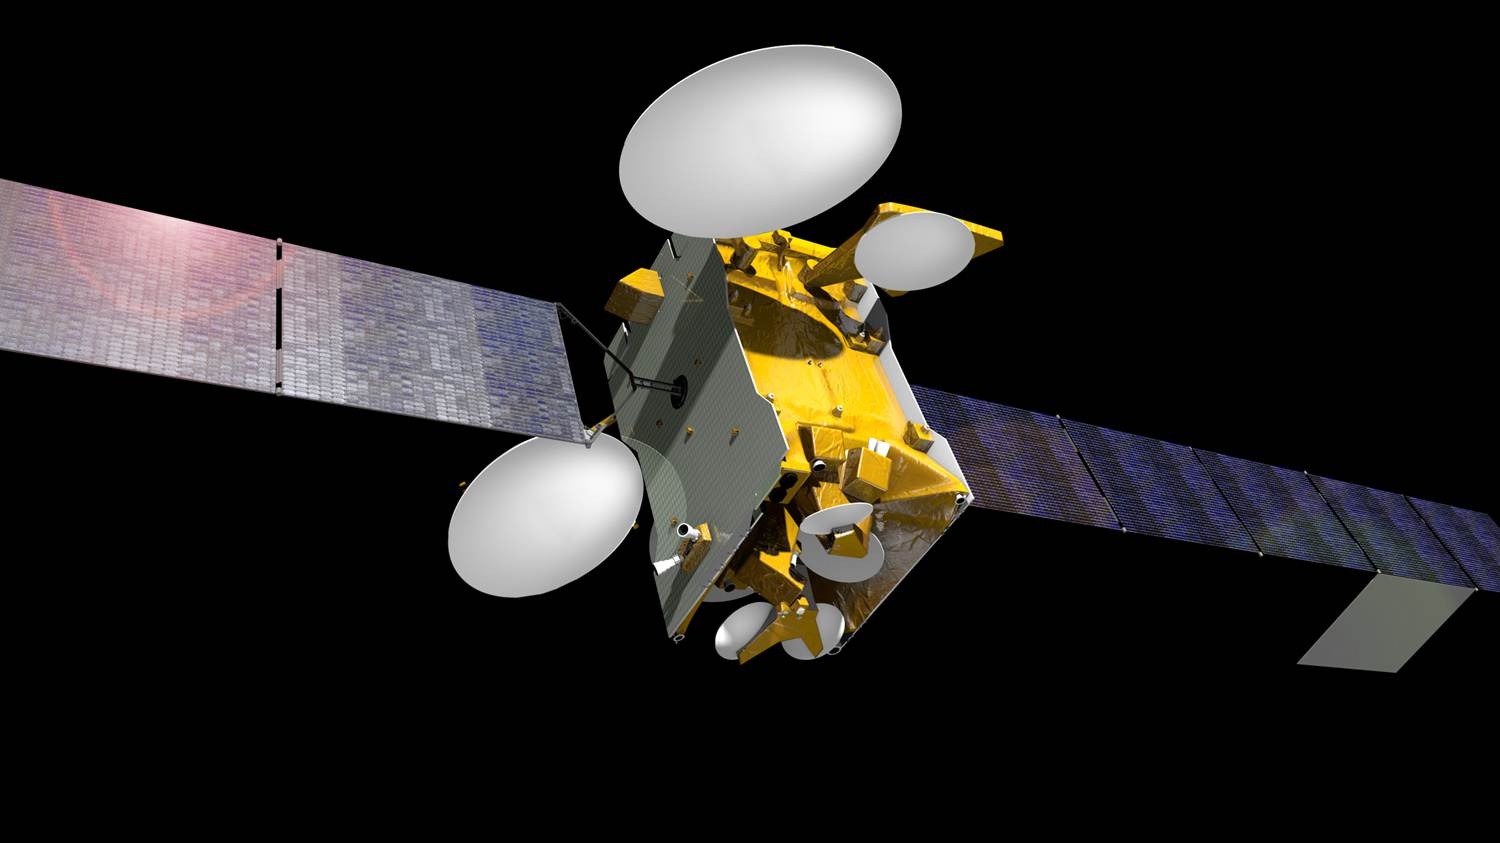 Artist's concept of the SES 10 satellite. Credit: Airbus Defense and Space